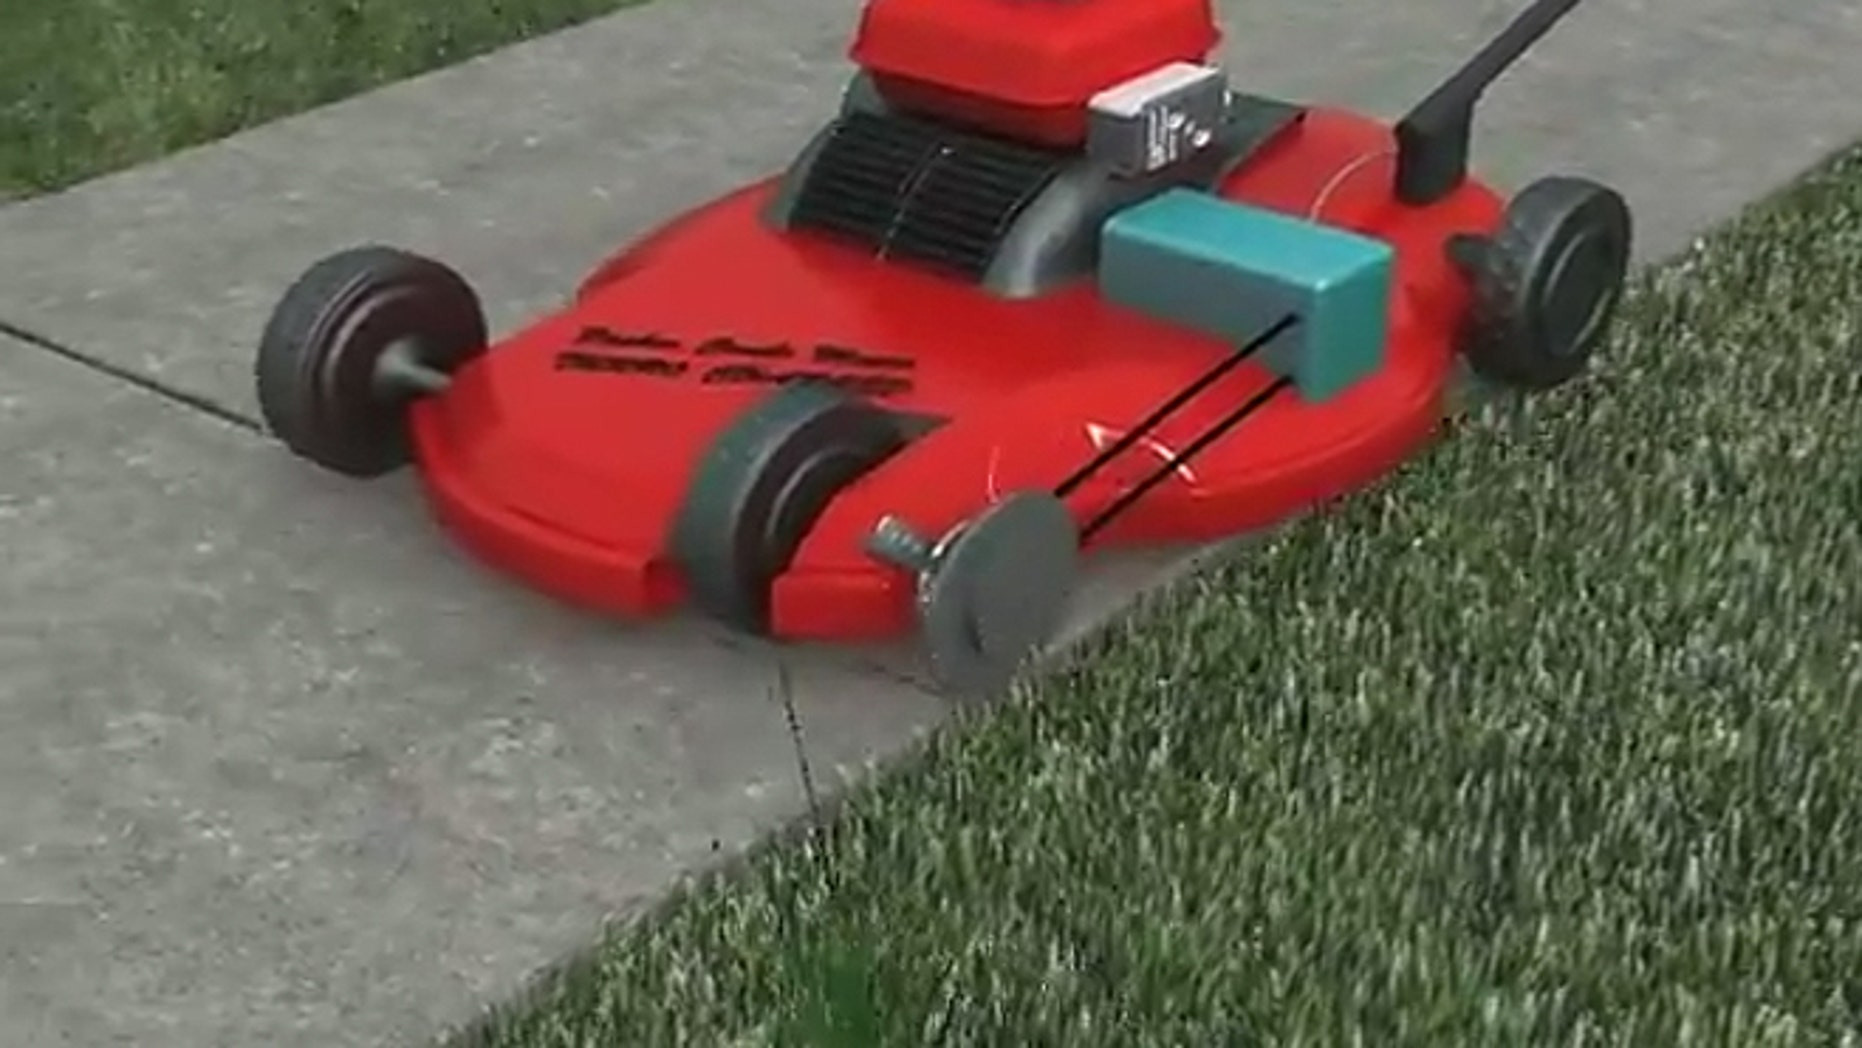 """One of the machine's inventors has written a patent application, which is currently awaiting government approval. He's also reached out to Philadelphia Mayor Michael Nutter, urging him to house the future Packer-Combo-Mower in a vacant lot in Northeast Philadelphia to """"bring real jobs"""" back to the struggling city. (YouTube)"""